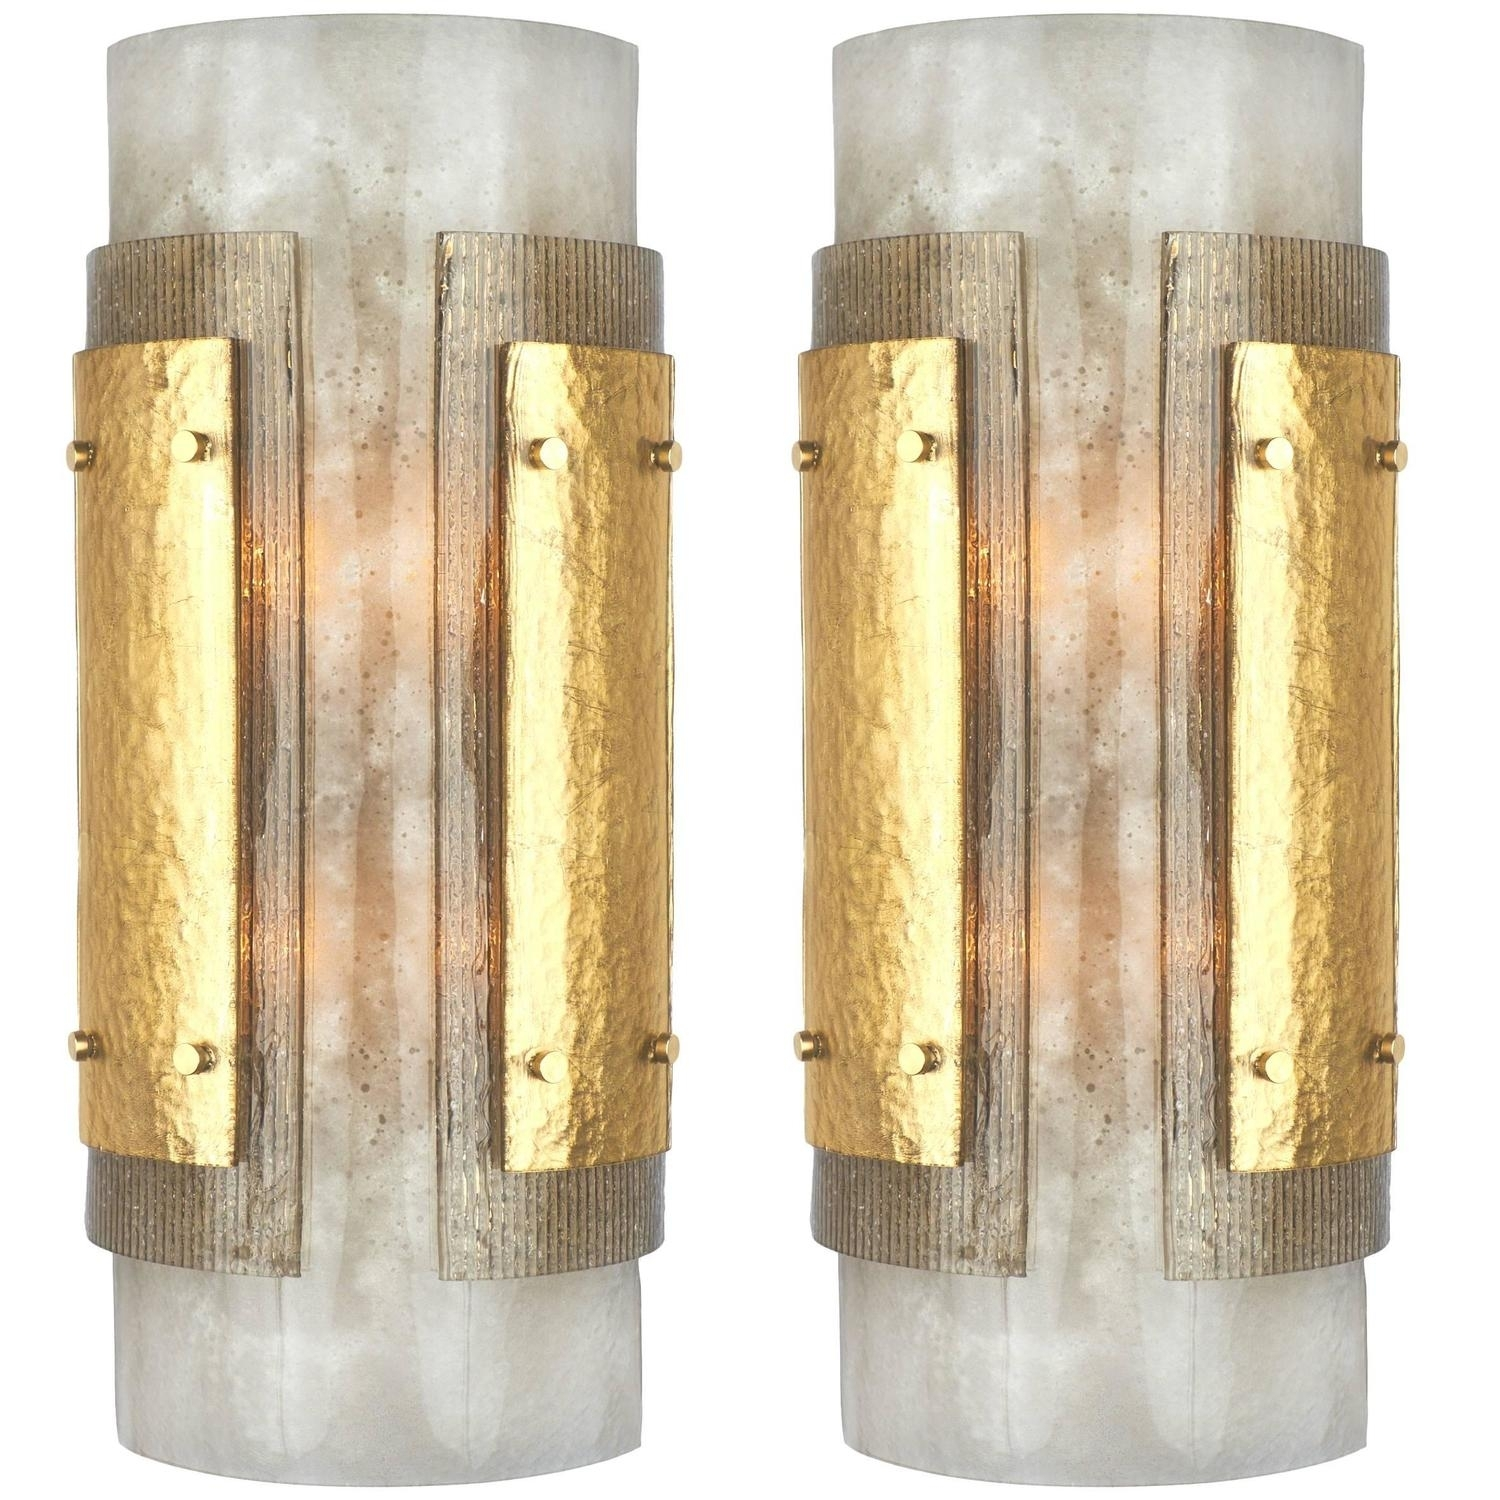 Italian Art Deco Murano Glass Wall Sconces pertaining to Art Deco Wall Sconces (Image 12 of 20)